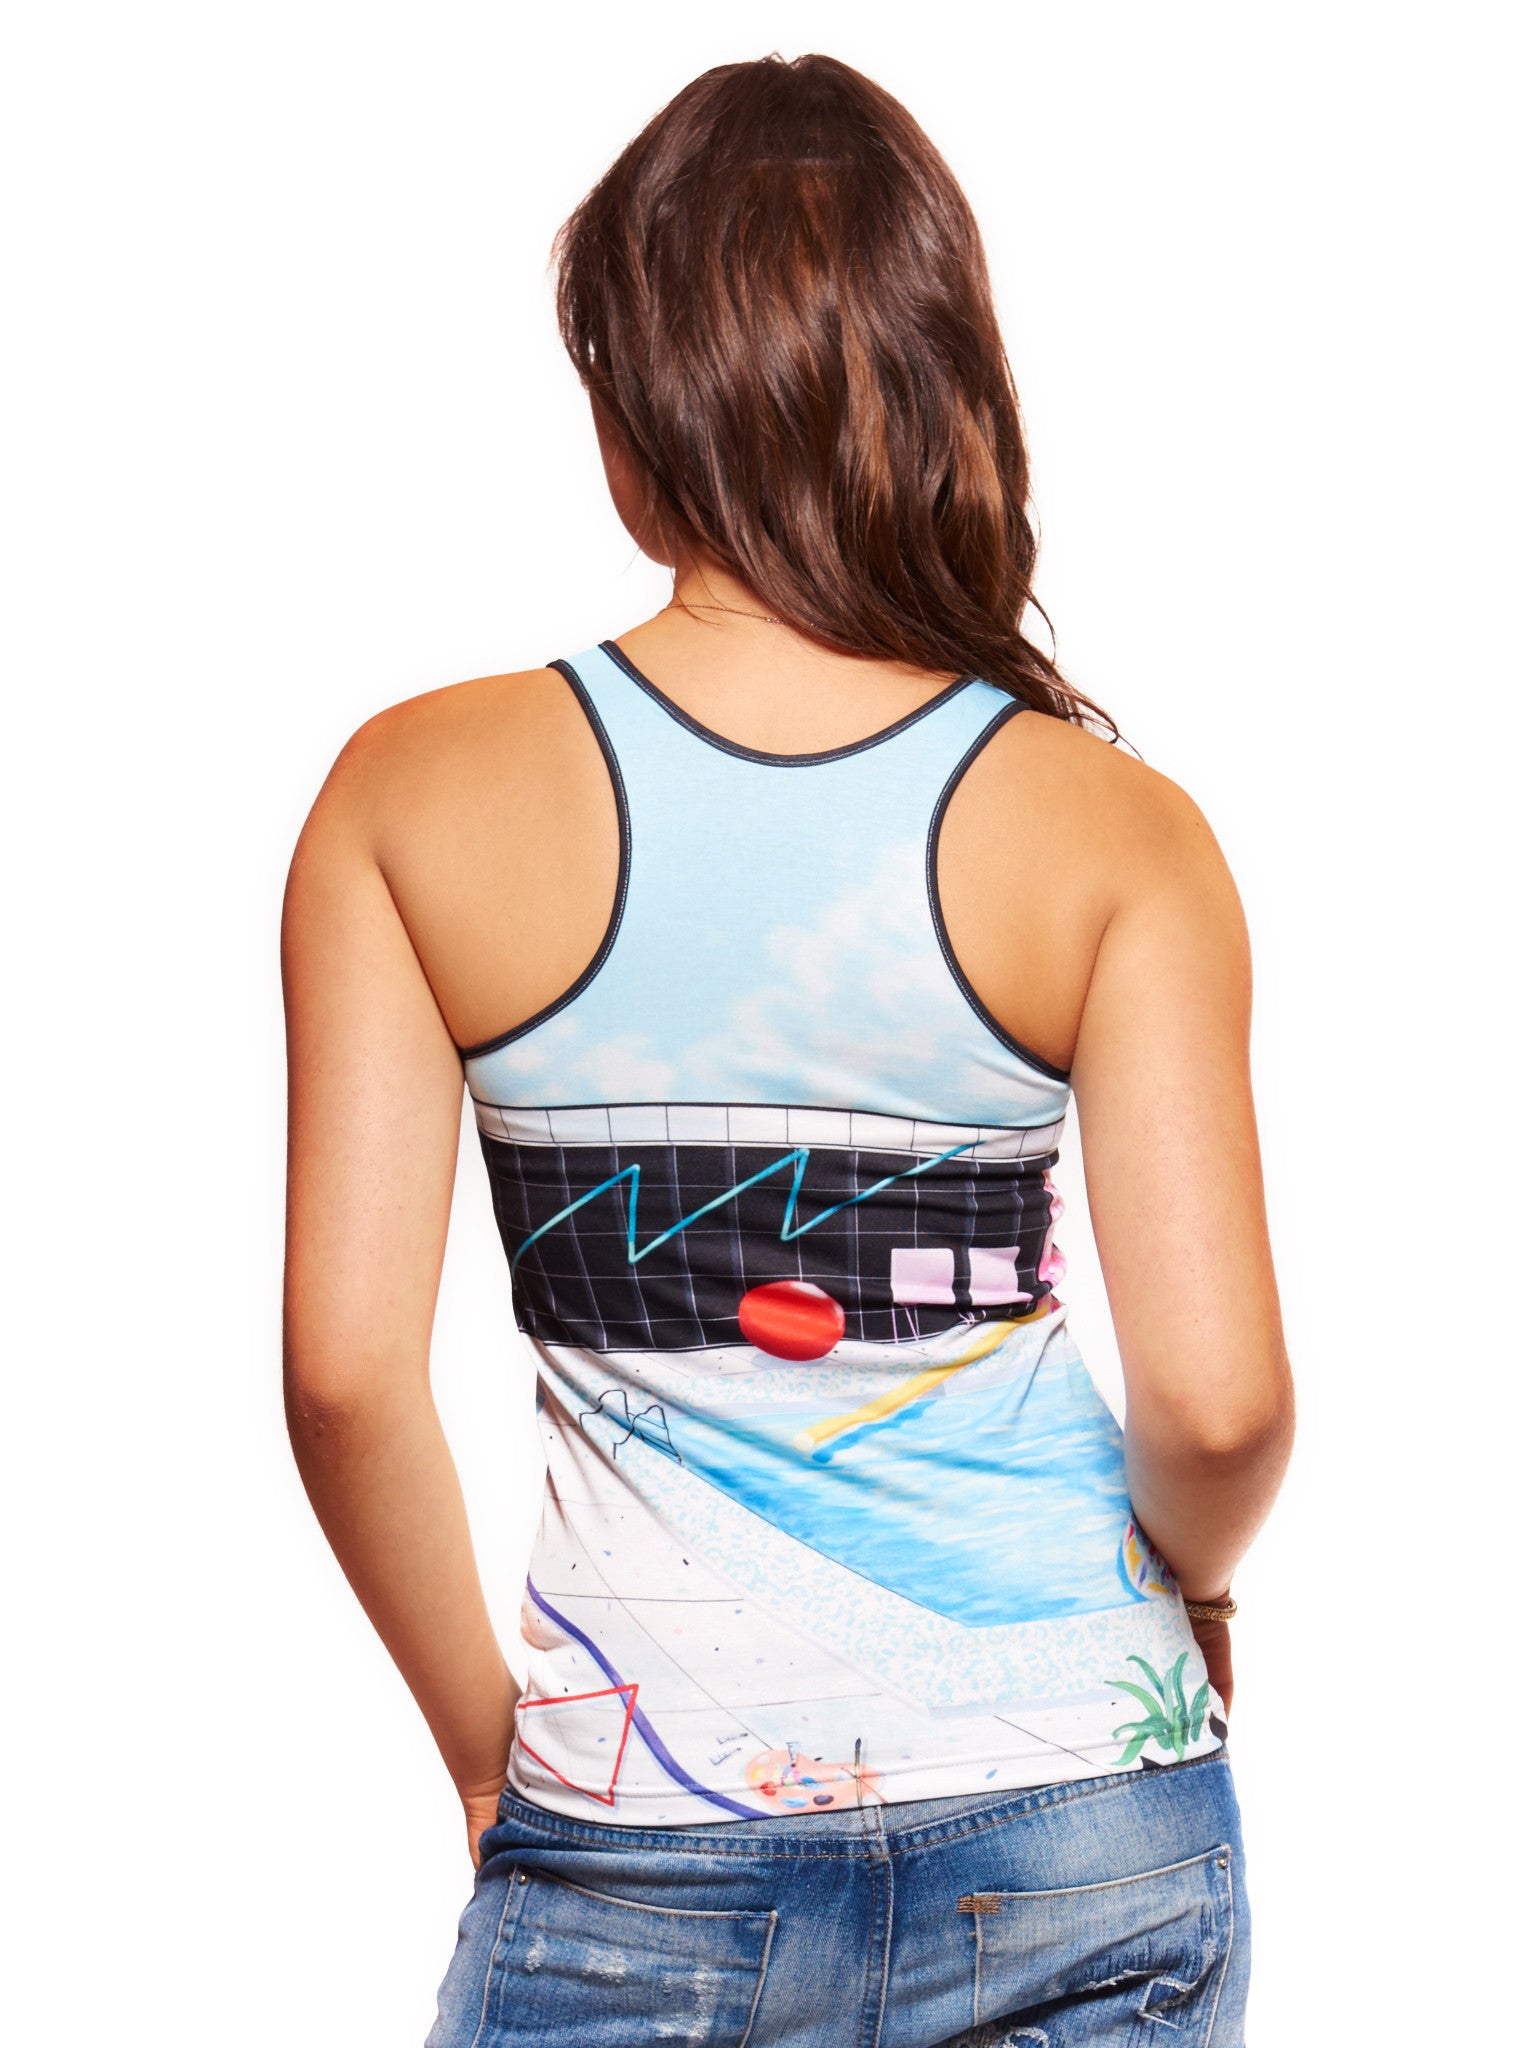 Summer of Love Women's Trinity Tank - Nuvango Gallery & Goods - 2